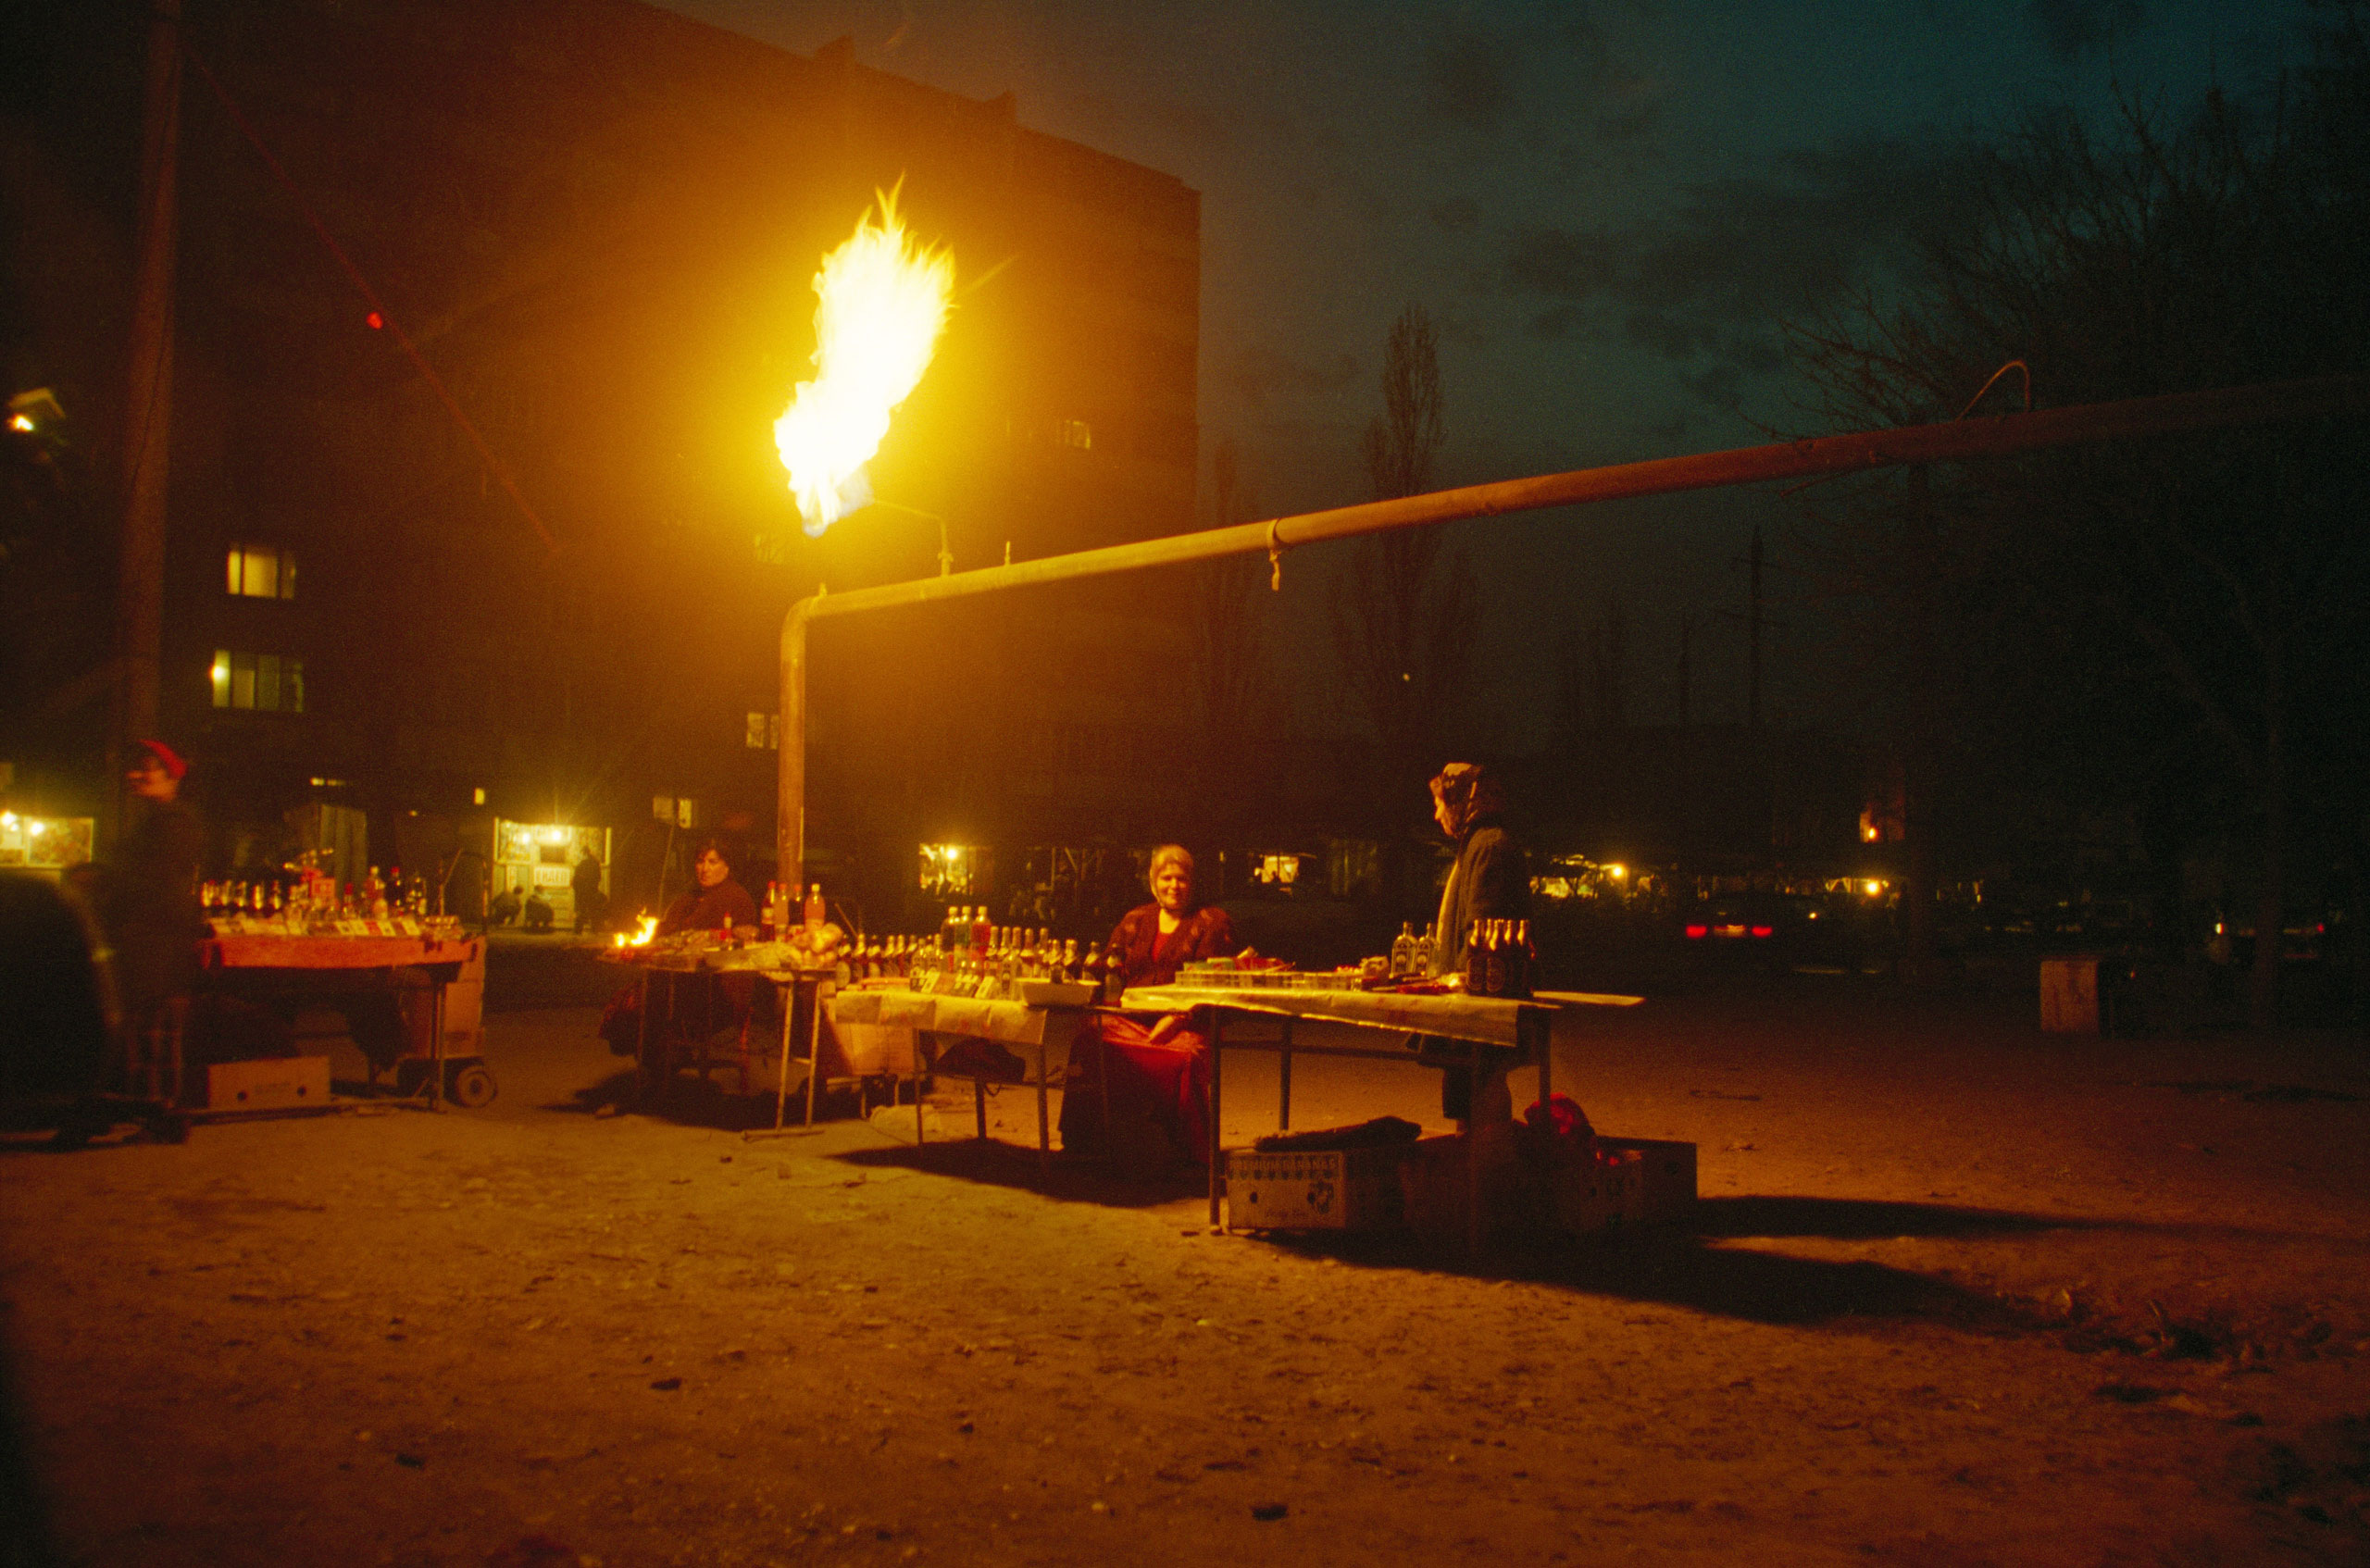 Women sell their wares while a gas pipeline burns in Grozny, Chechnya, February, 2002.